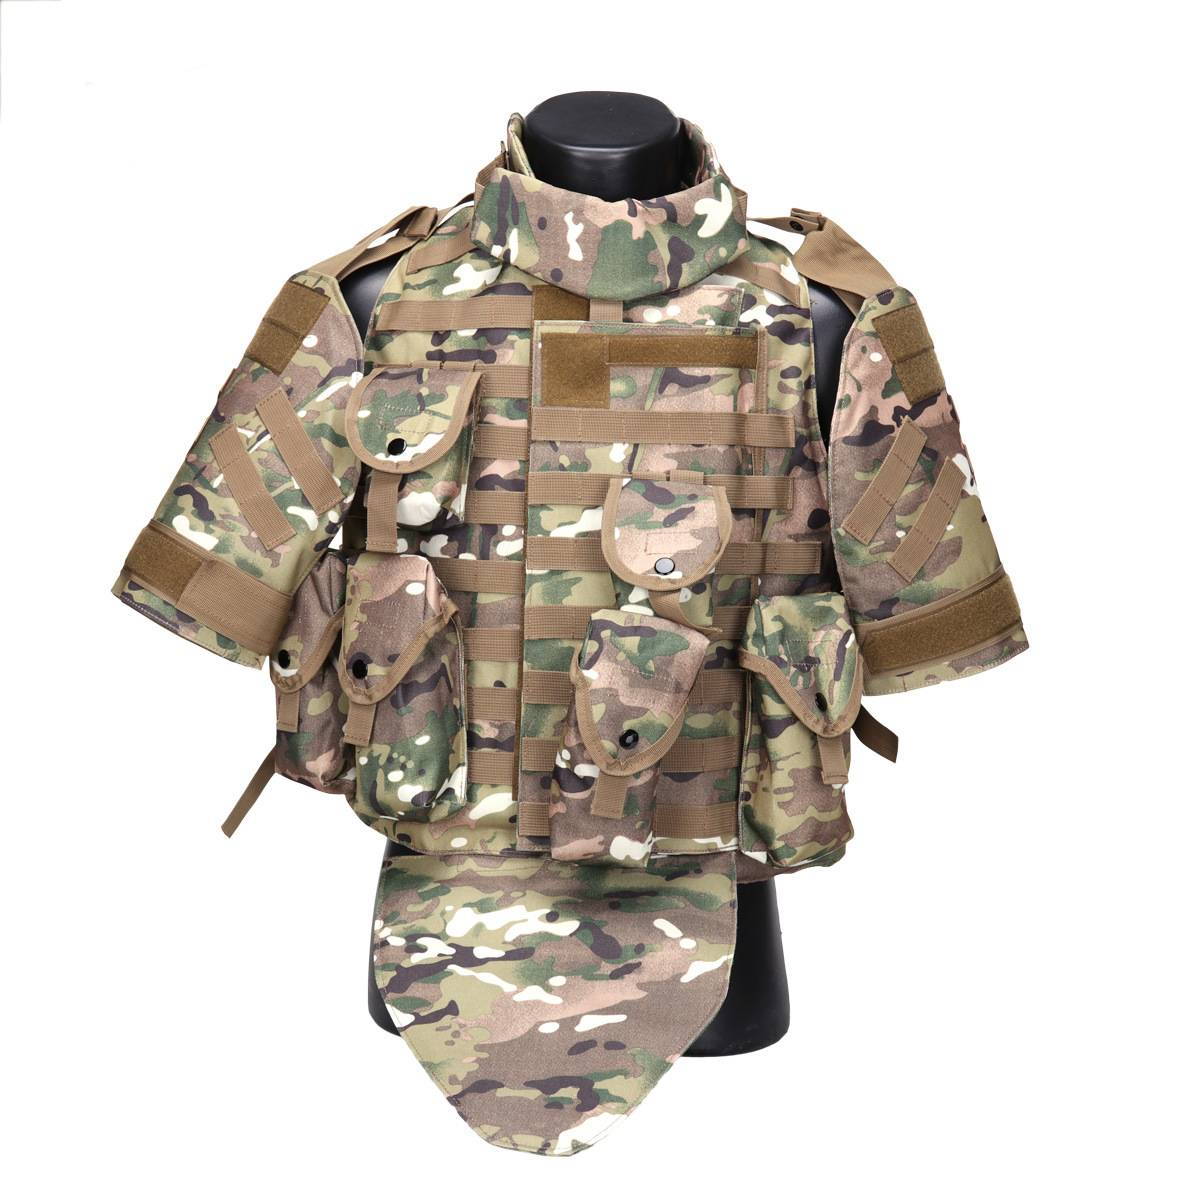 OTV interceptor tactical vest field equipment camouflage outdoor expansion battle vest Featured Image